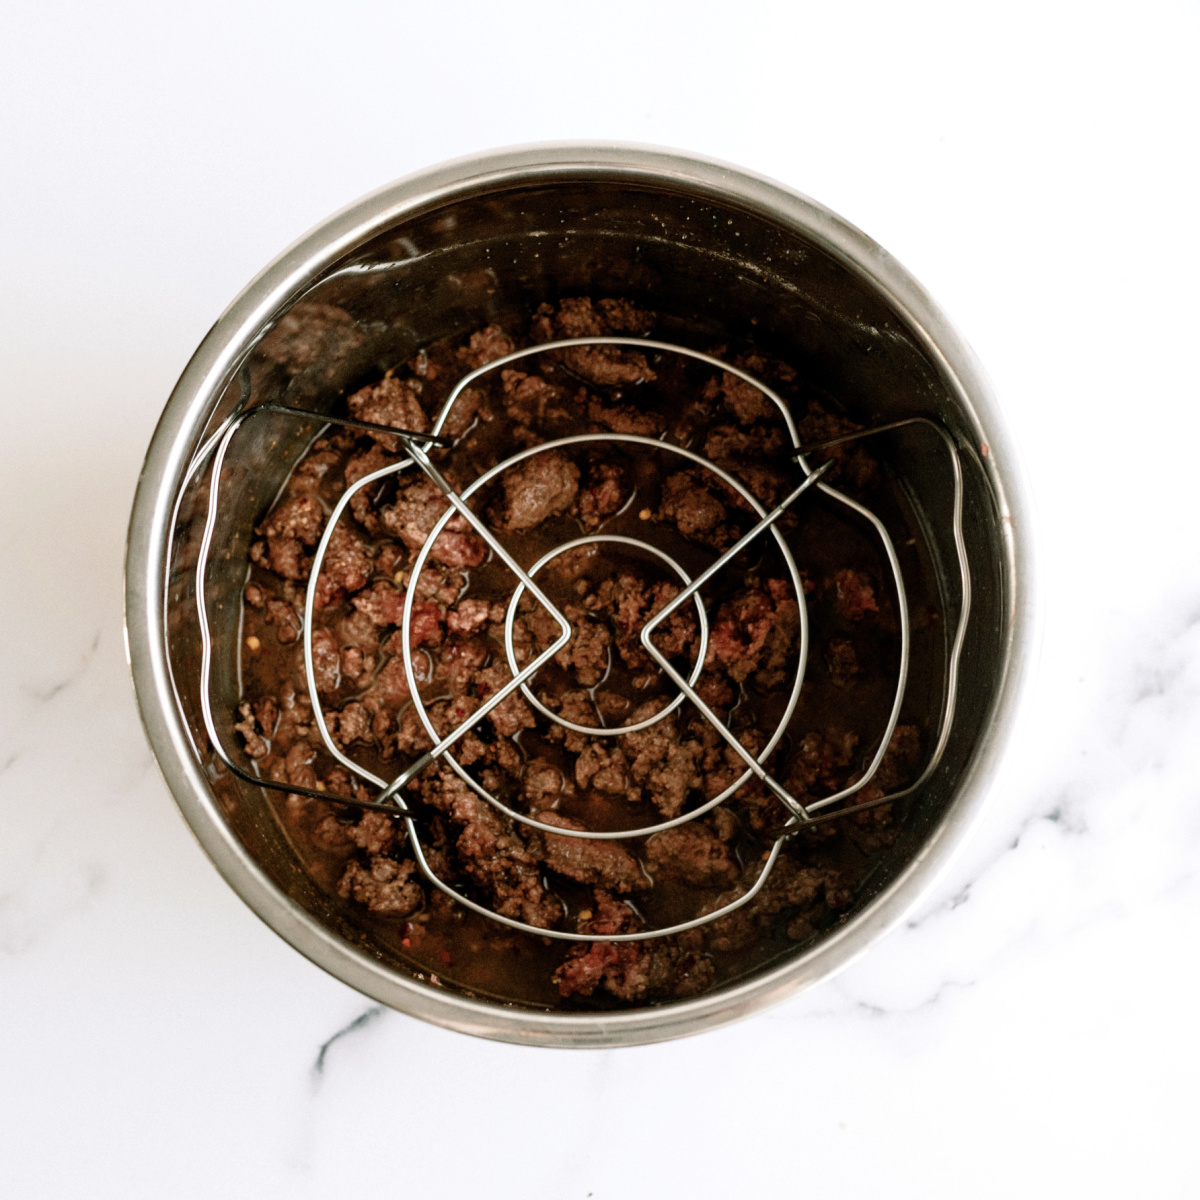 trivet placed on top of ground beef in the bottom of the instant pot